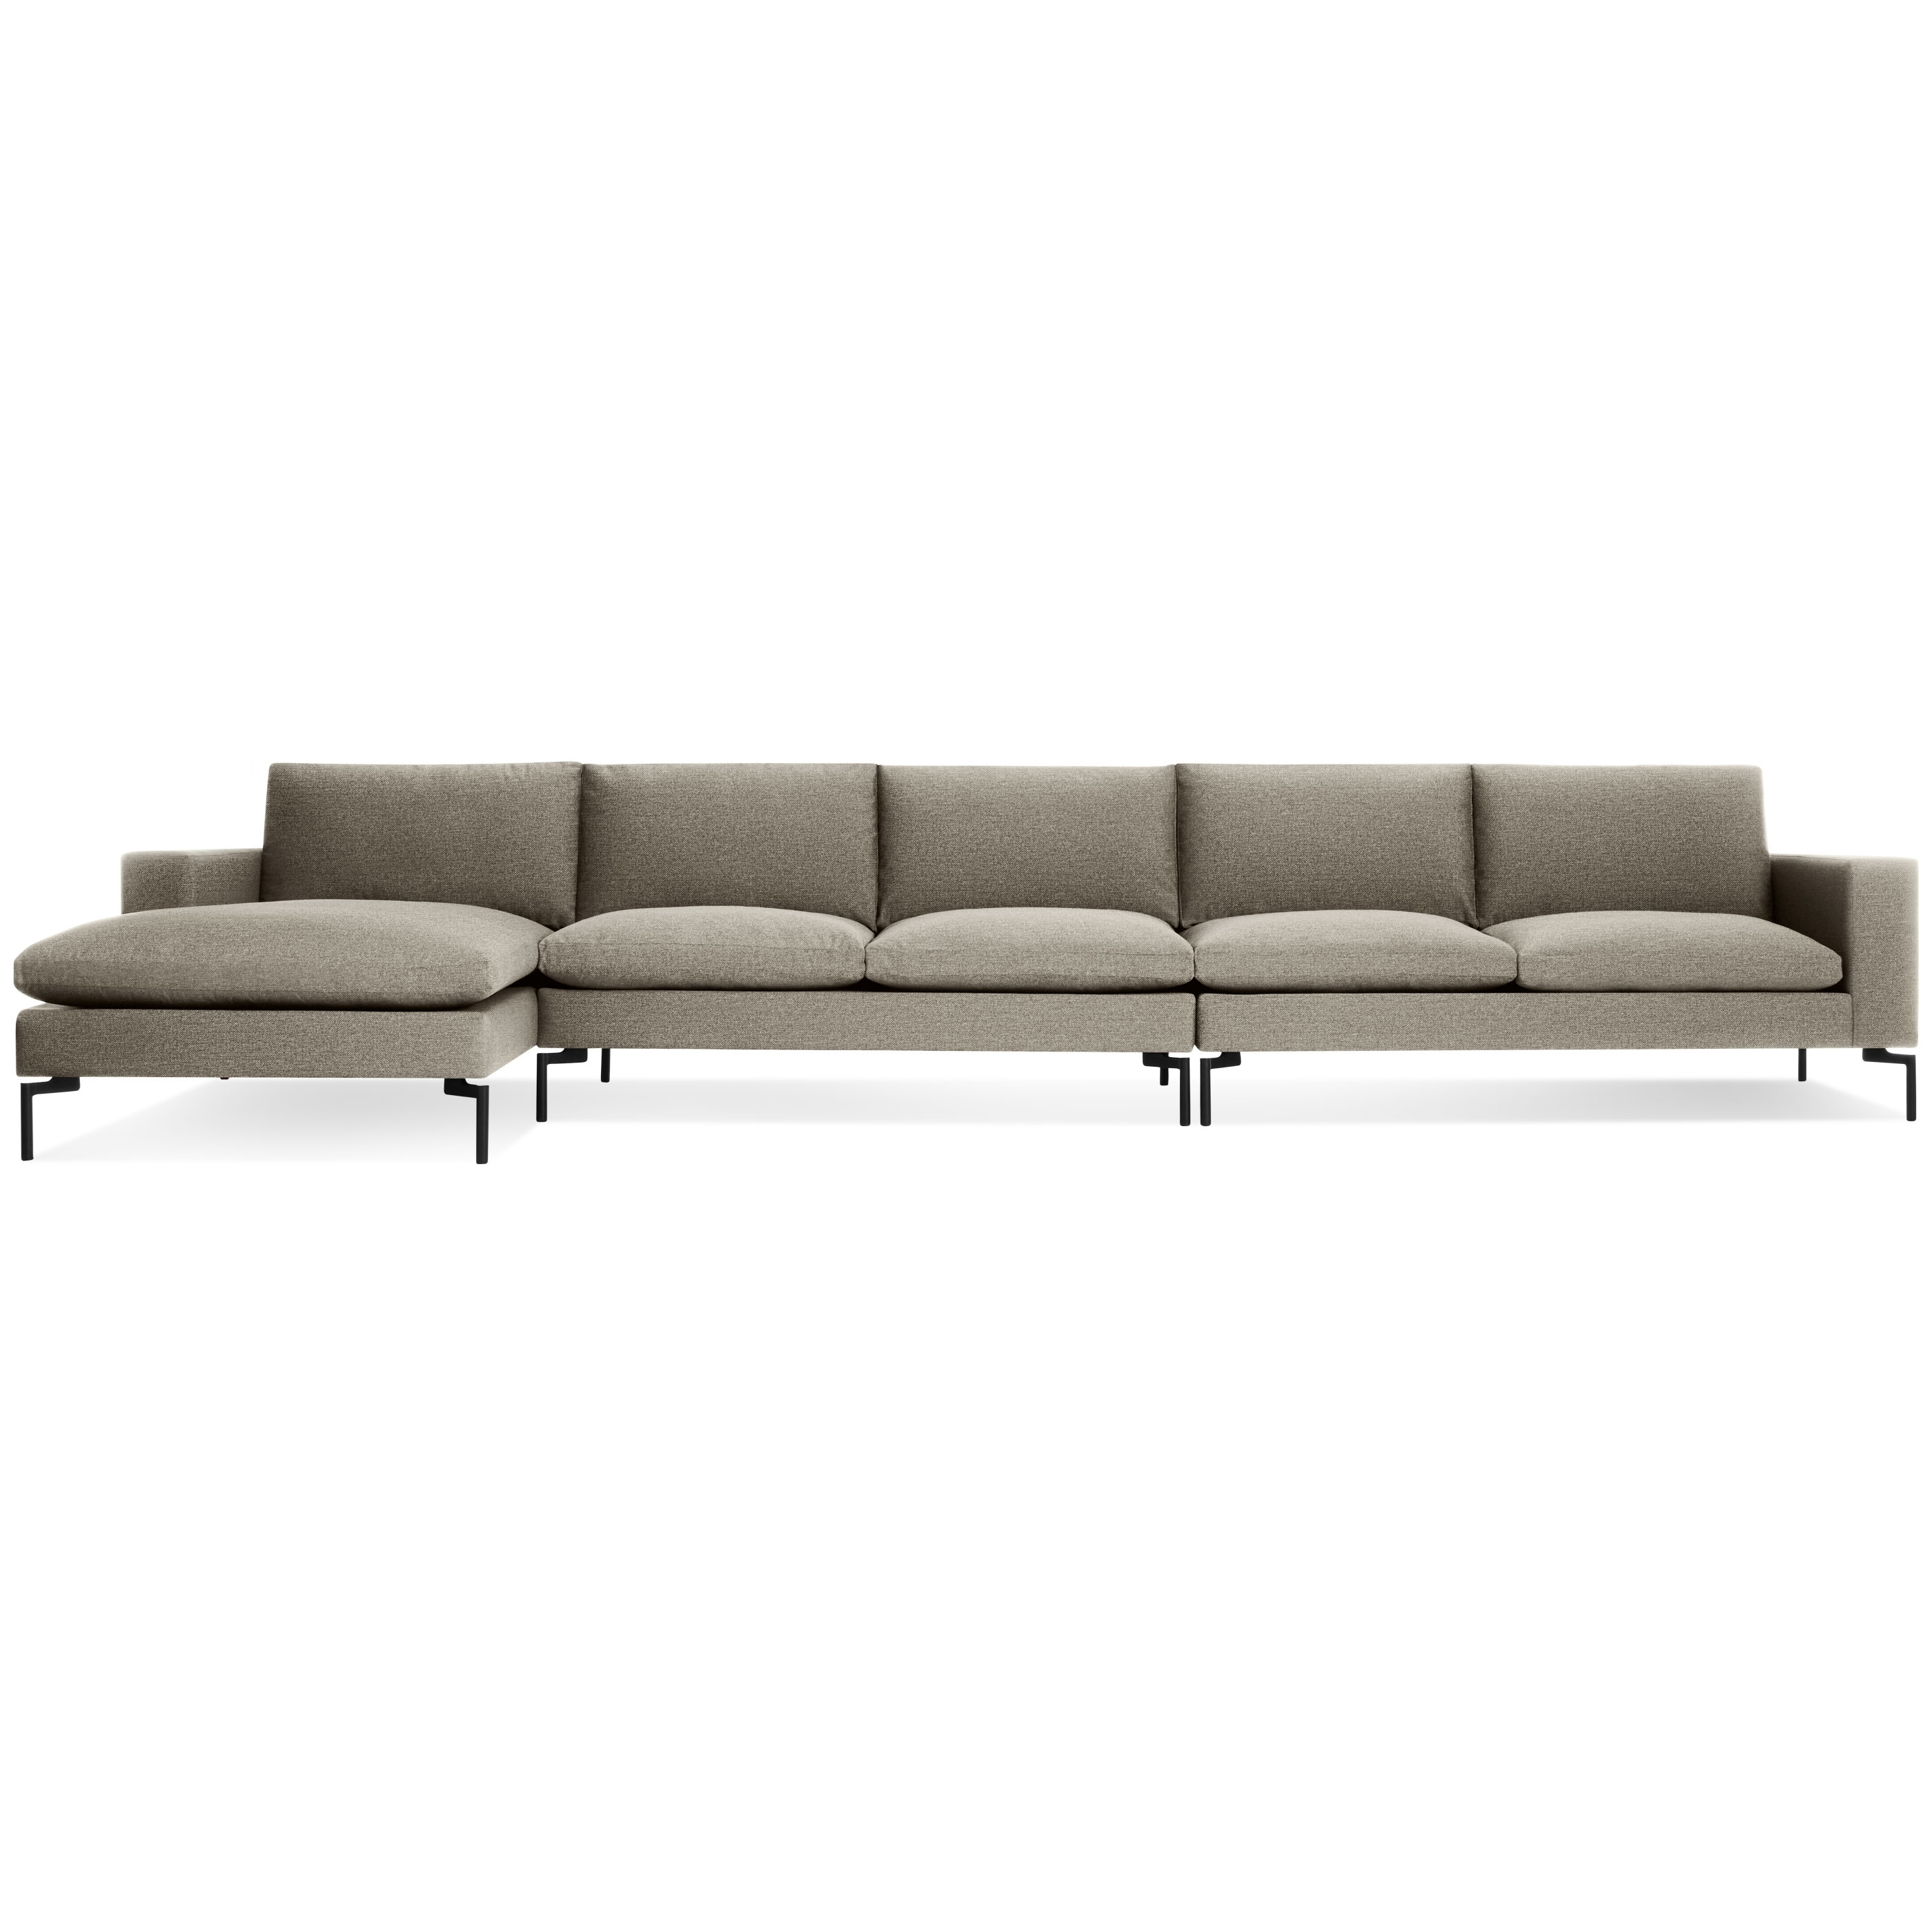 Widely Used New Standard Medium Sectional Sofa – Modern Sectional Sofas (View 20 of 20)